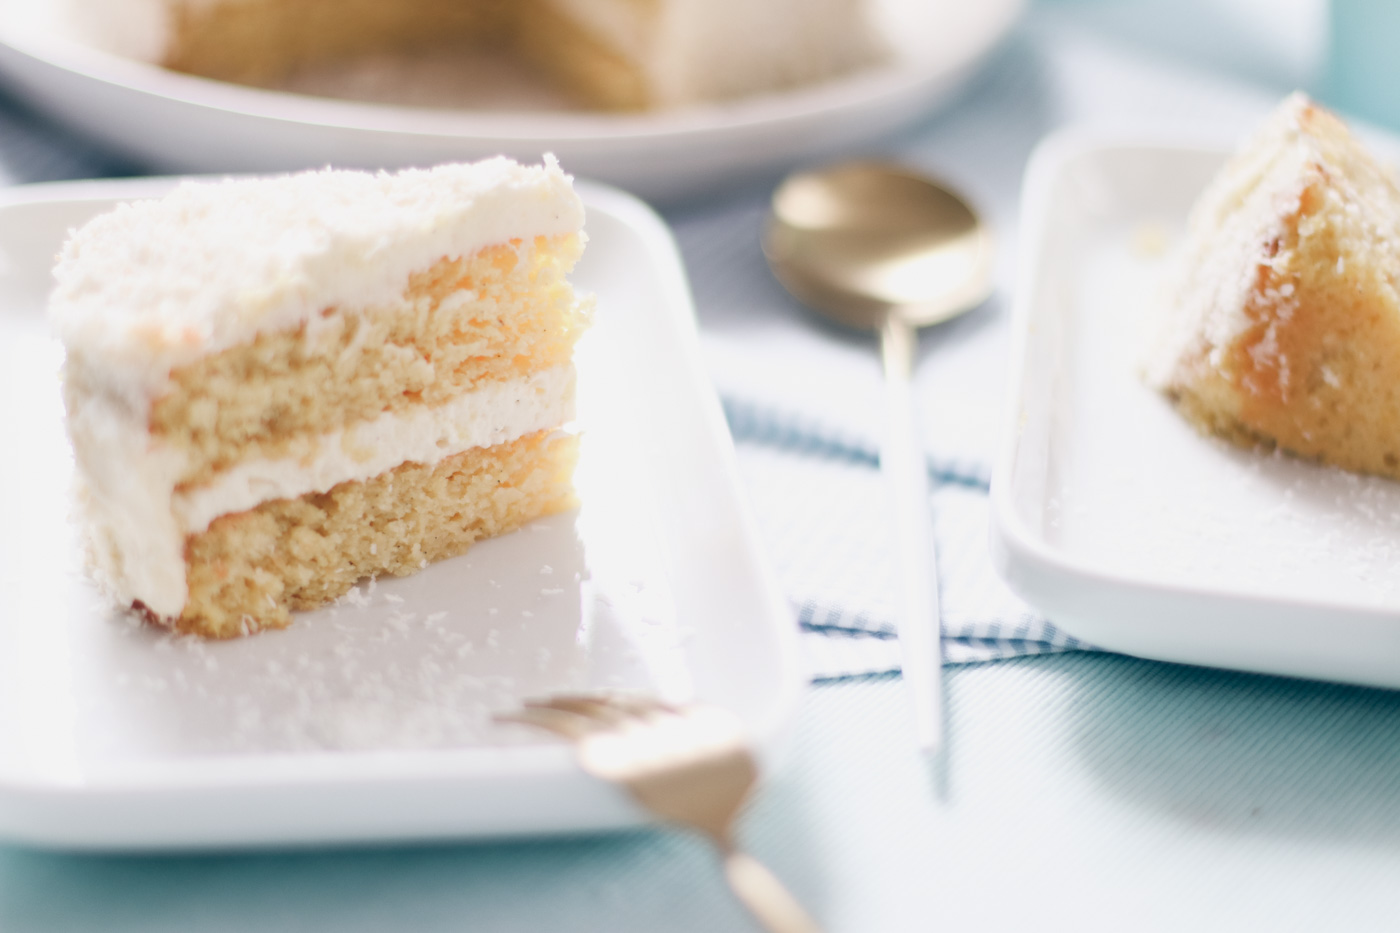 Coconut Cake A super moist and extra delicious recipe. It's low-carb, gluten-free and ketogenic.